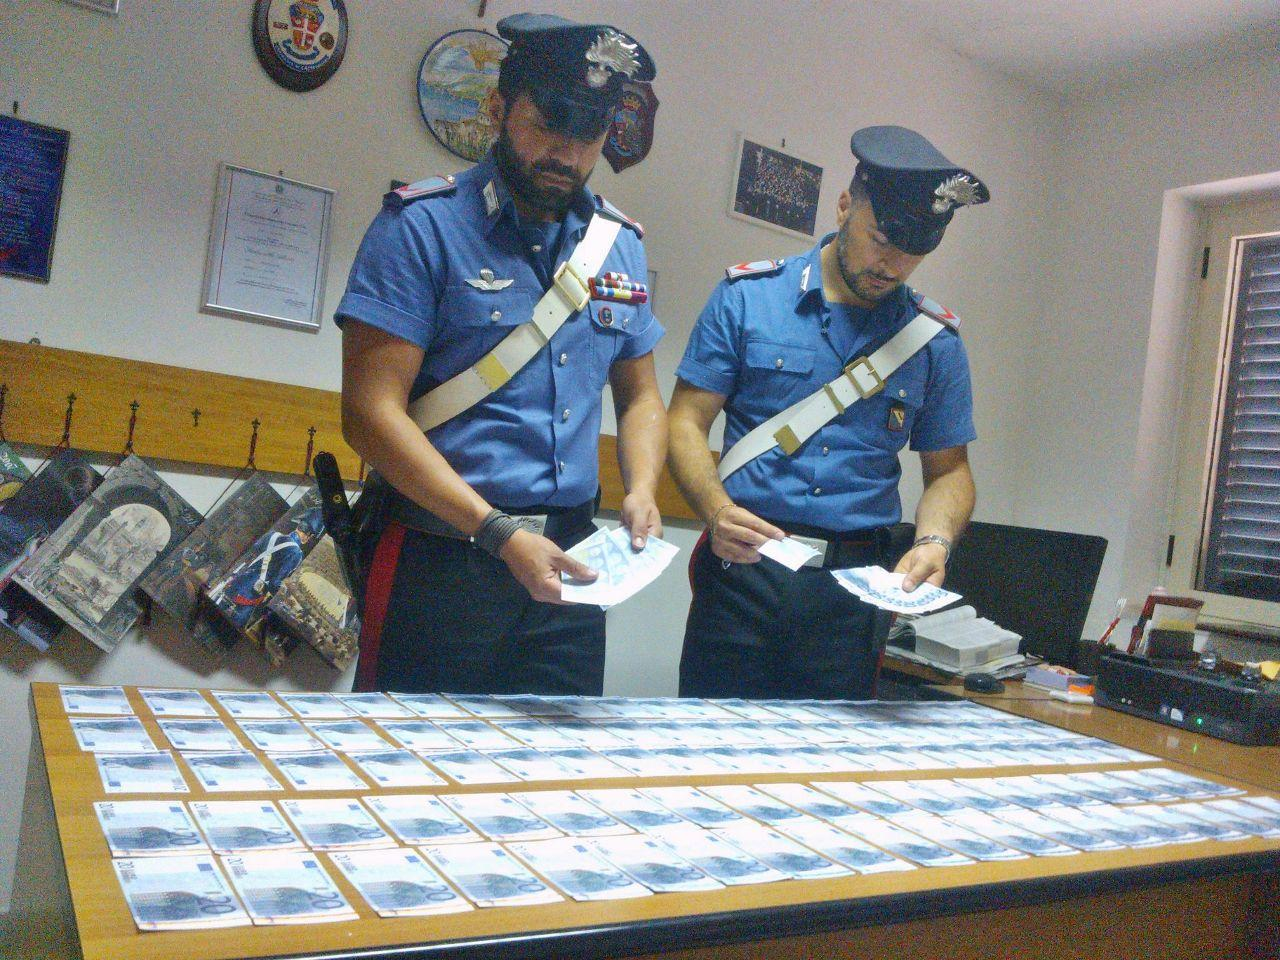 In giro con banconote false, arrestato 24enne